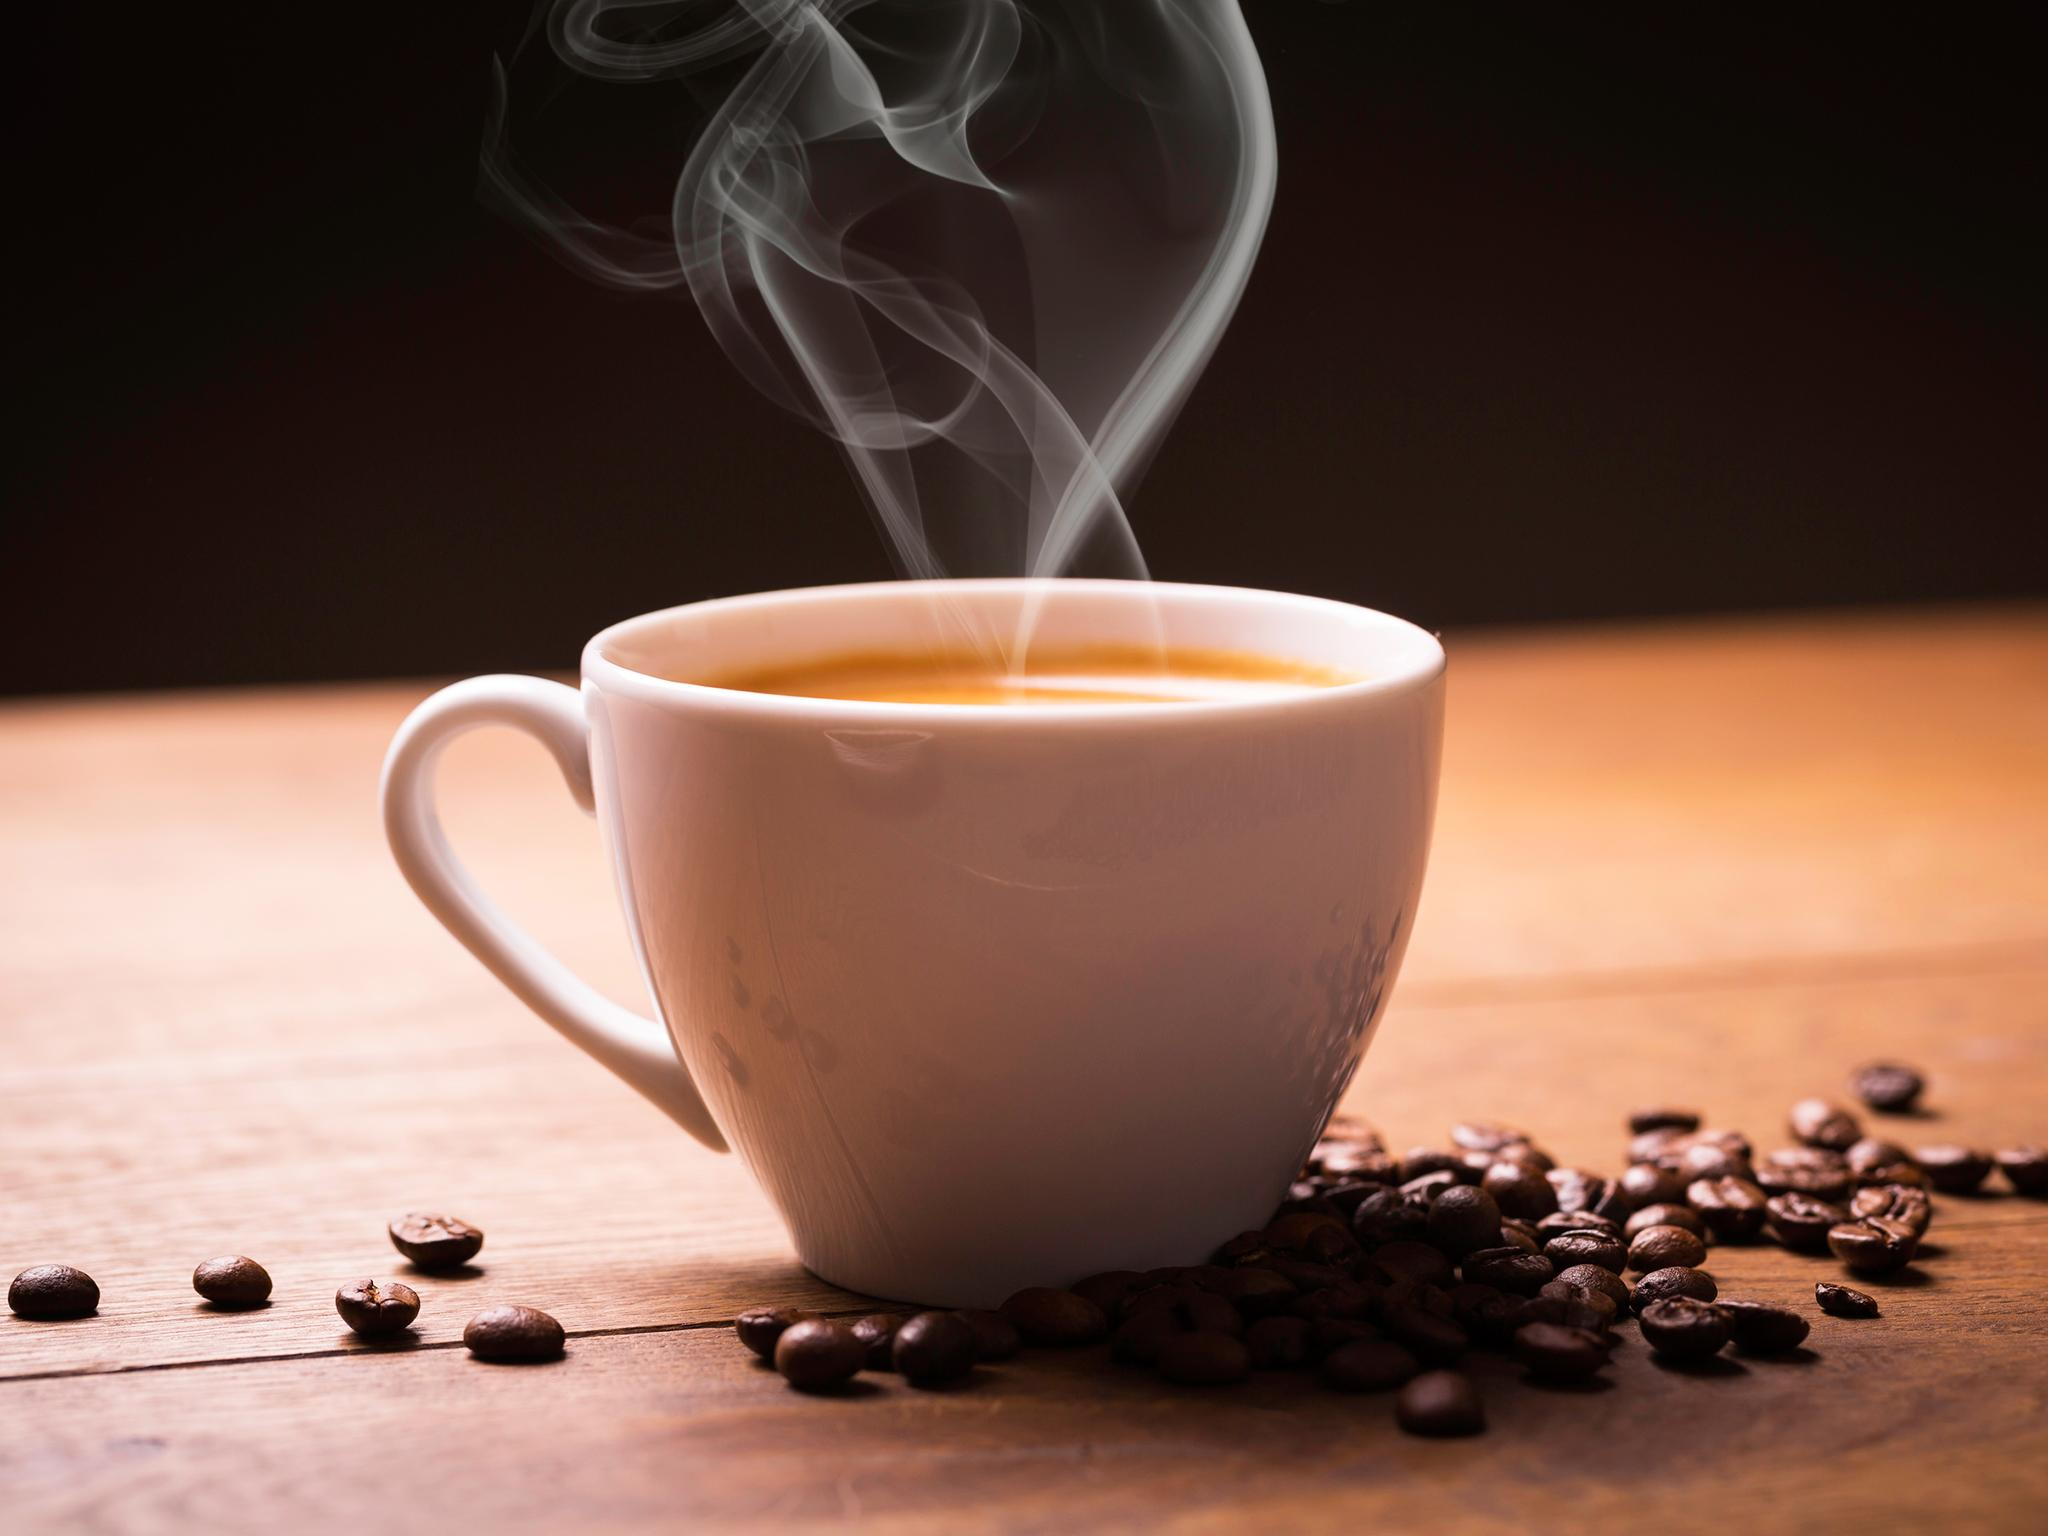 a sip of coffee